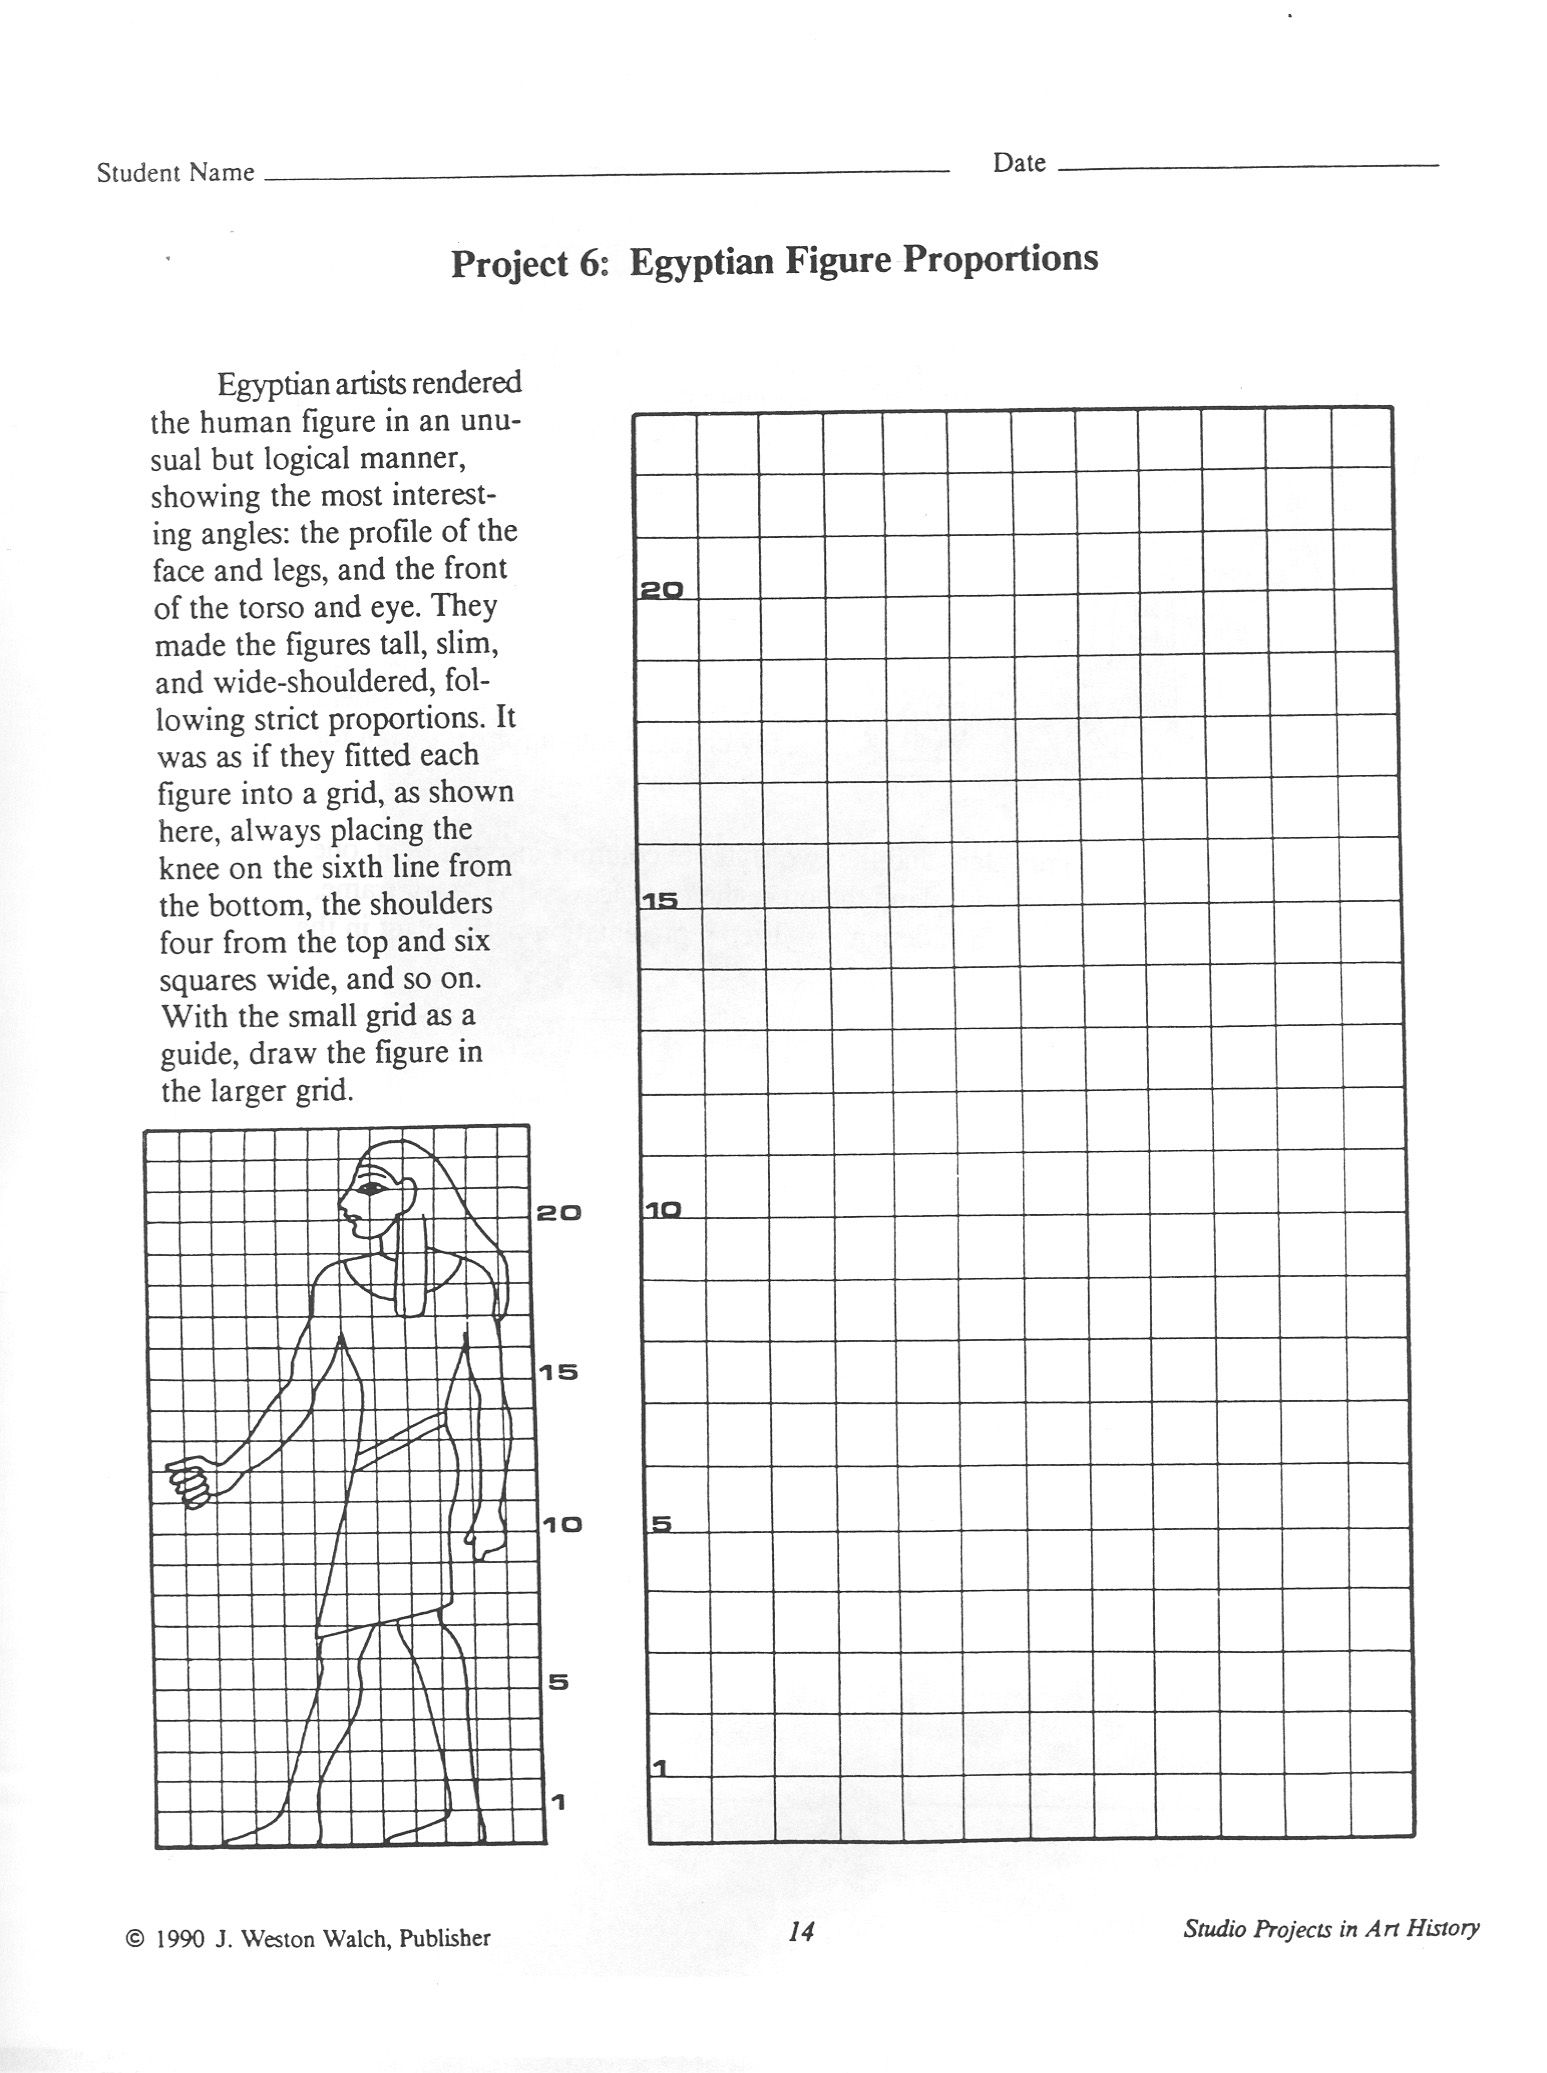 Egyptian Art Handout 5 Egyptian Figure Proportions